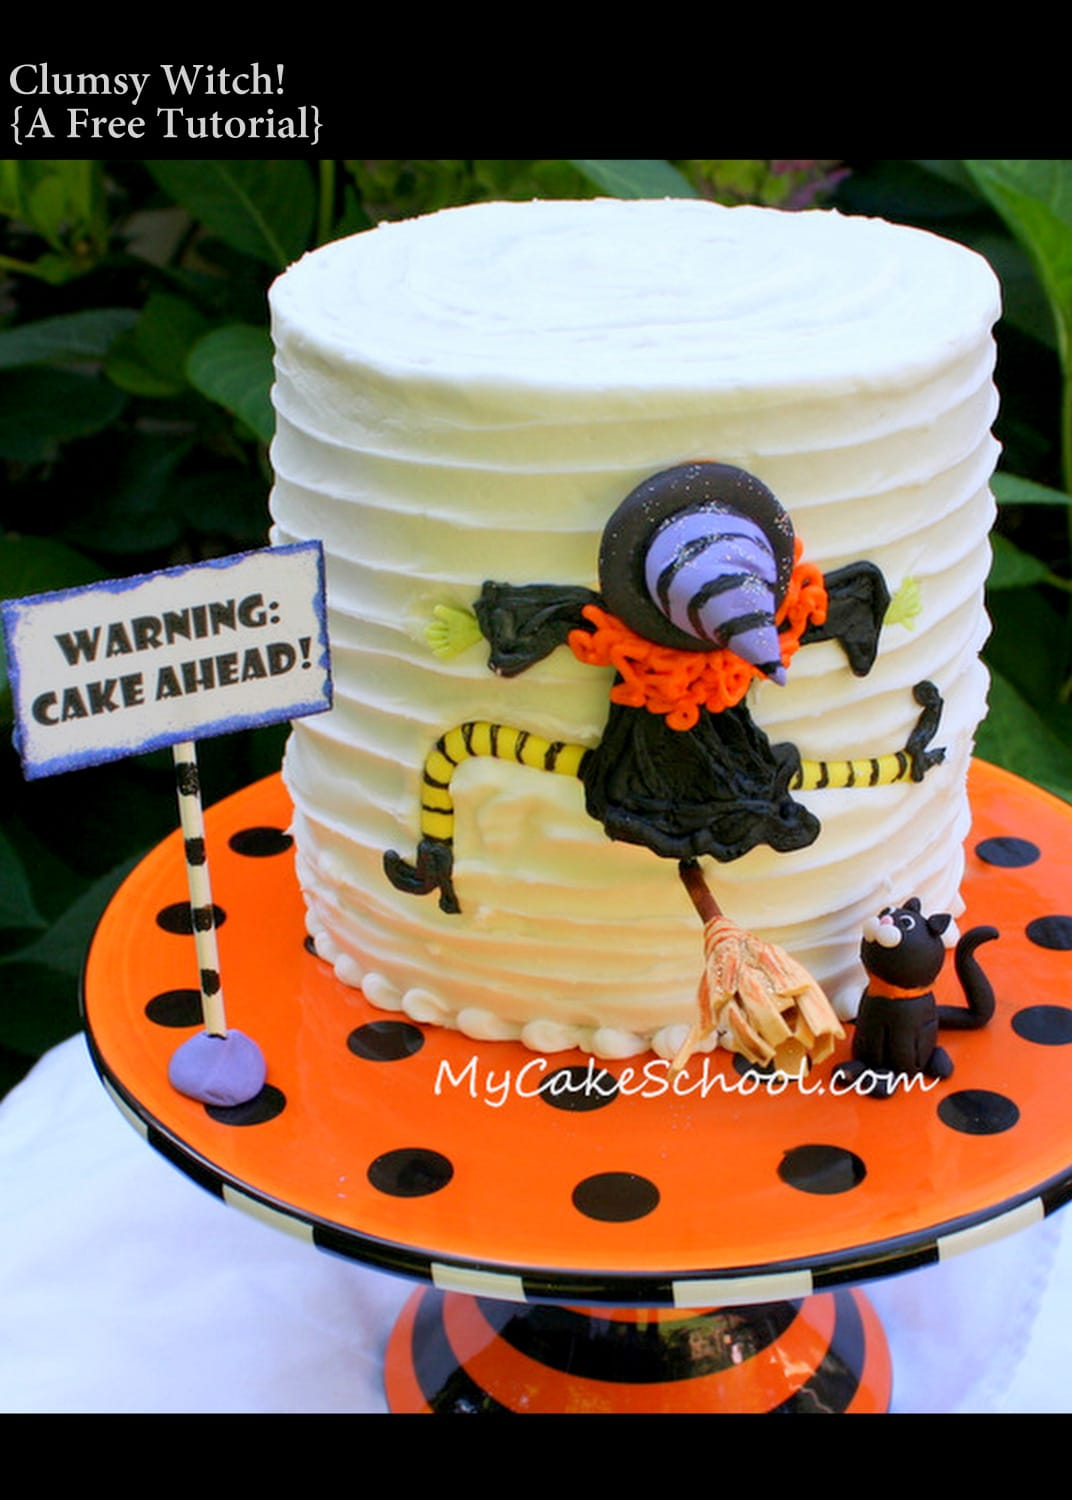 Clumsy Witch Cake! A free tutorial by MyCakeSchool.com